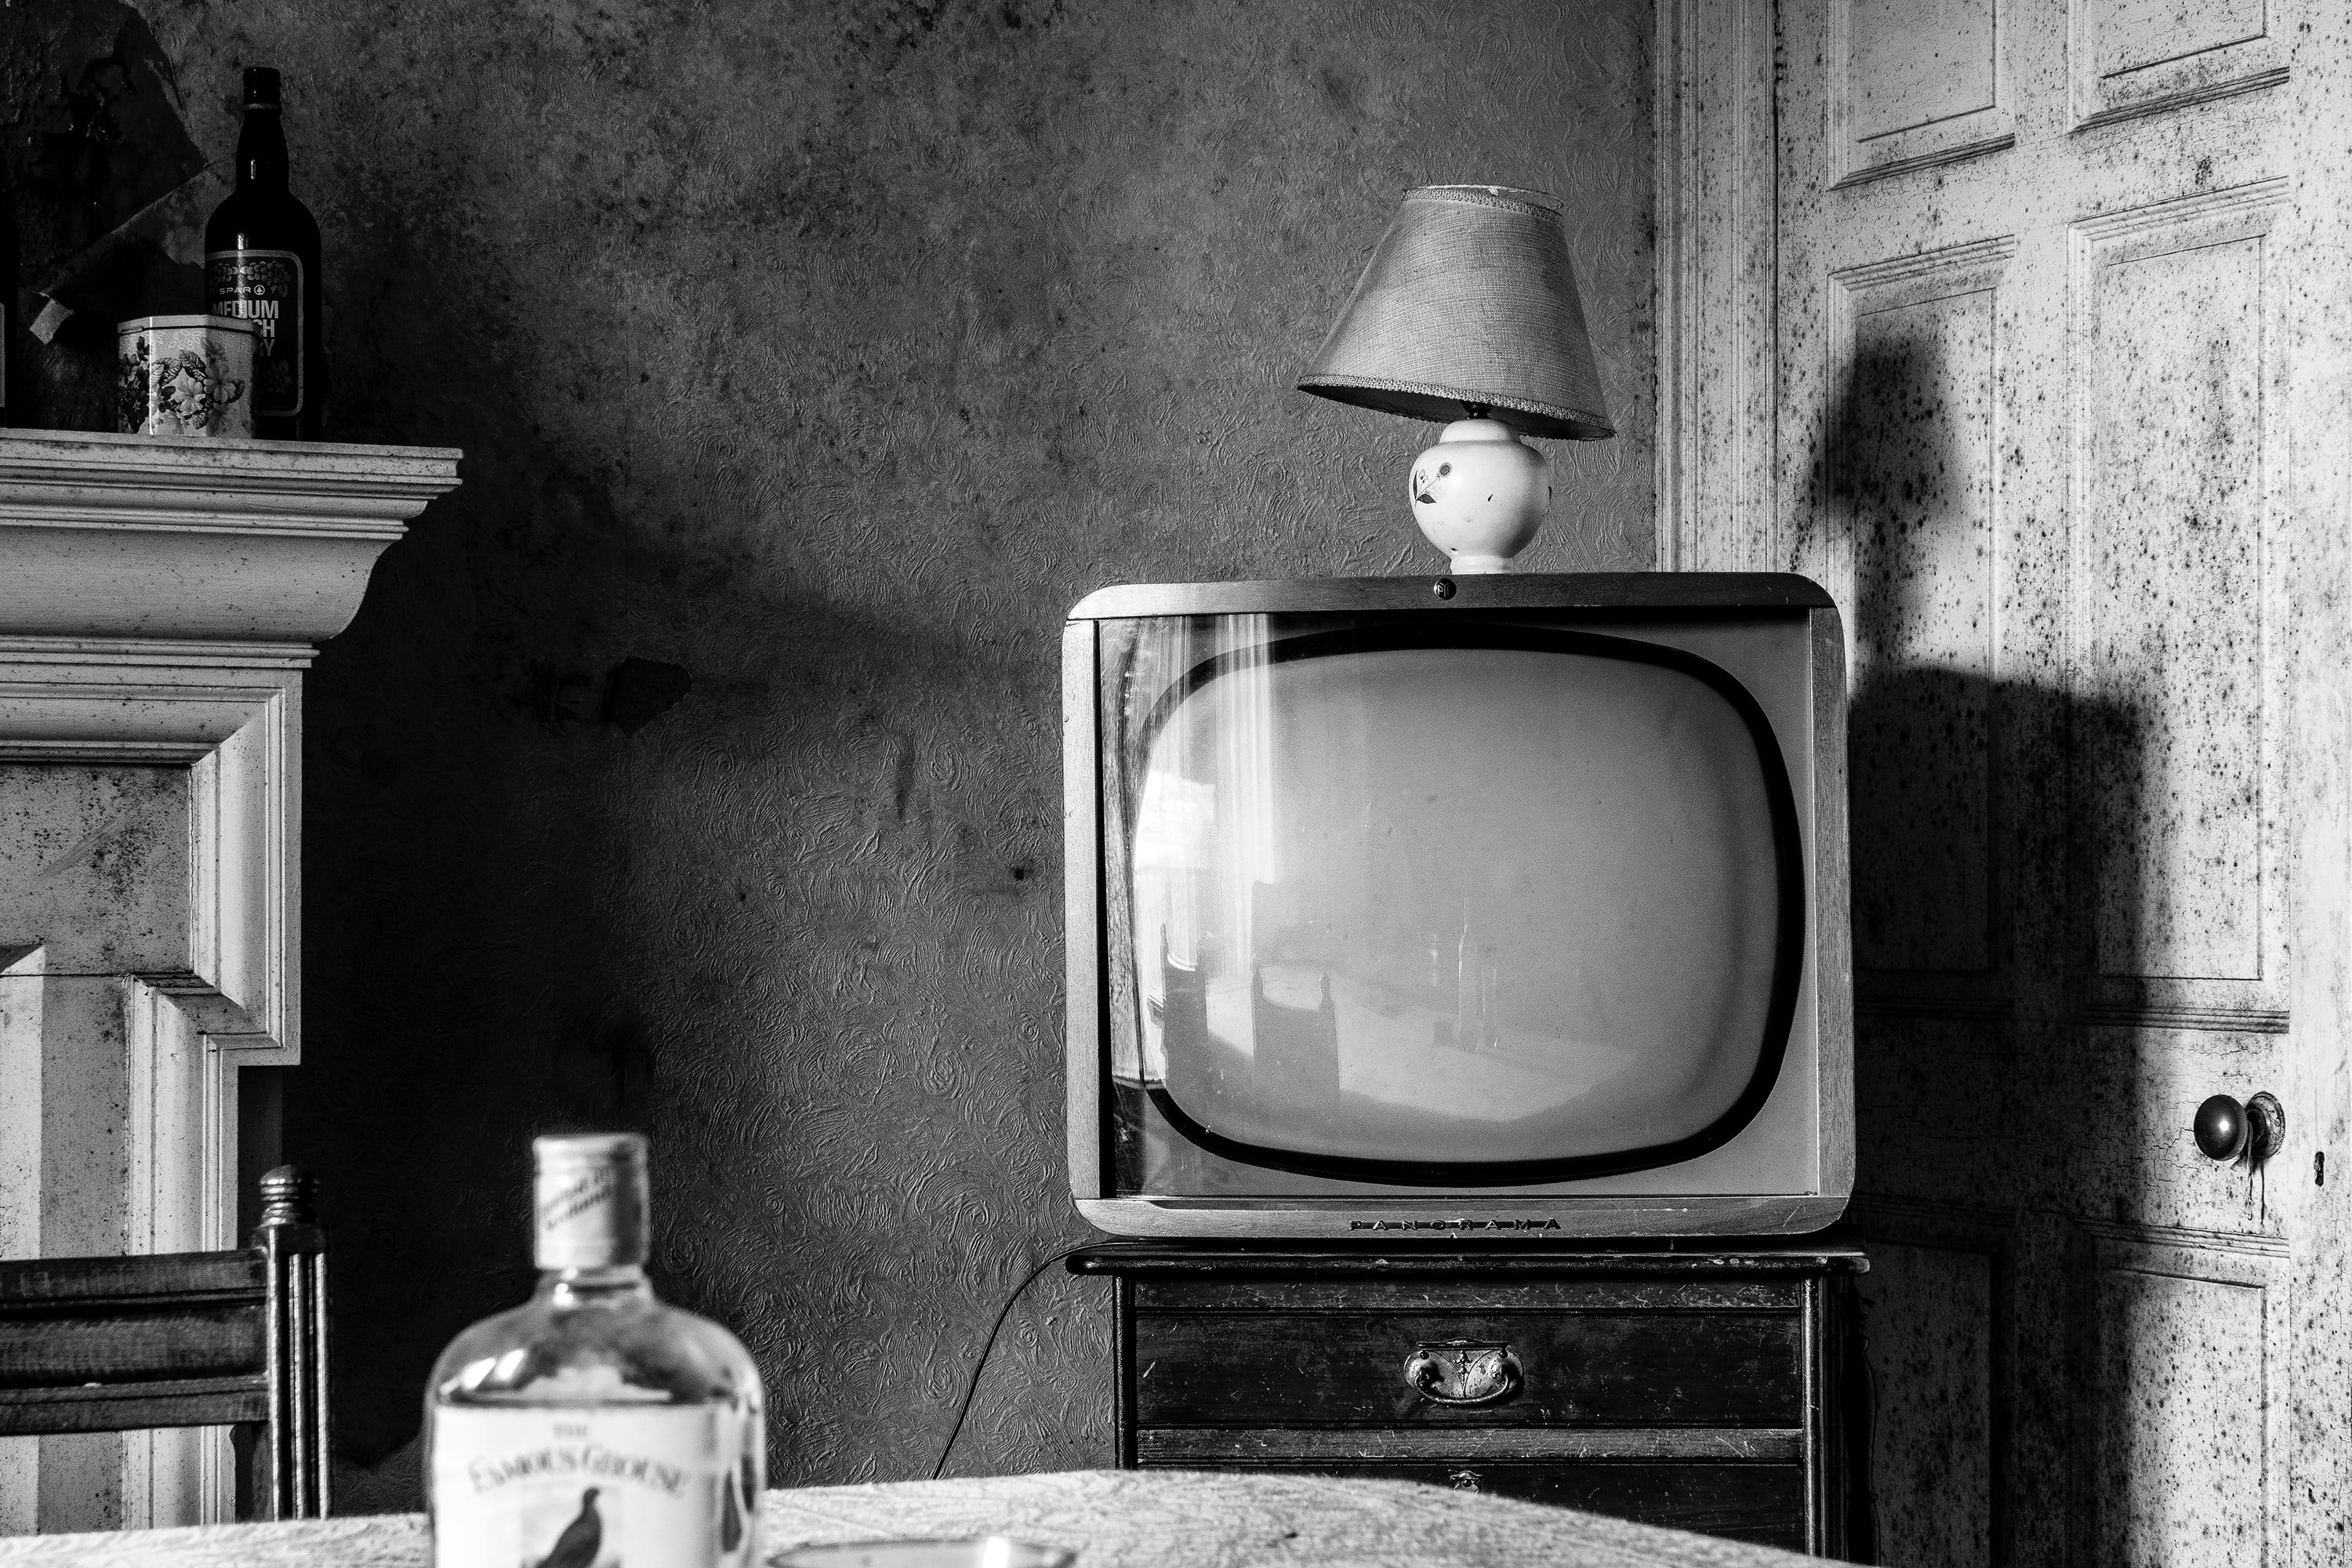 bottle of liquor on table with CRT television across beside the close door